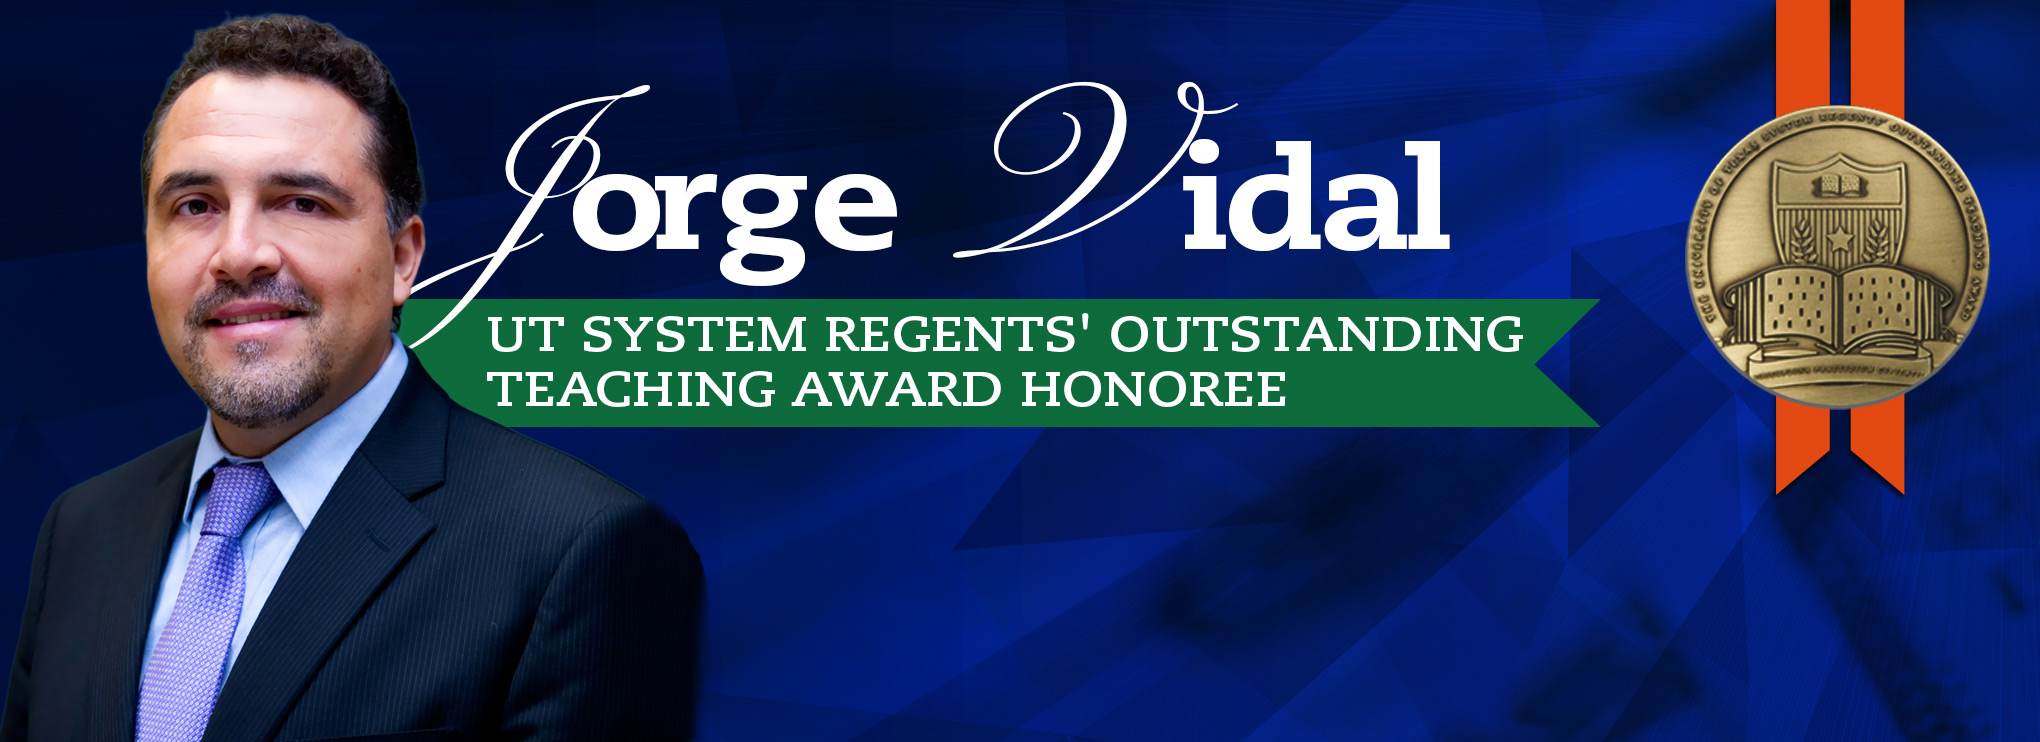 Preparation and passion propels Vidal to receive coveted Regents' Award for teaching